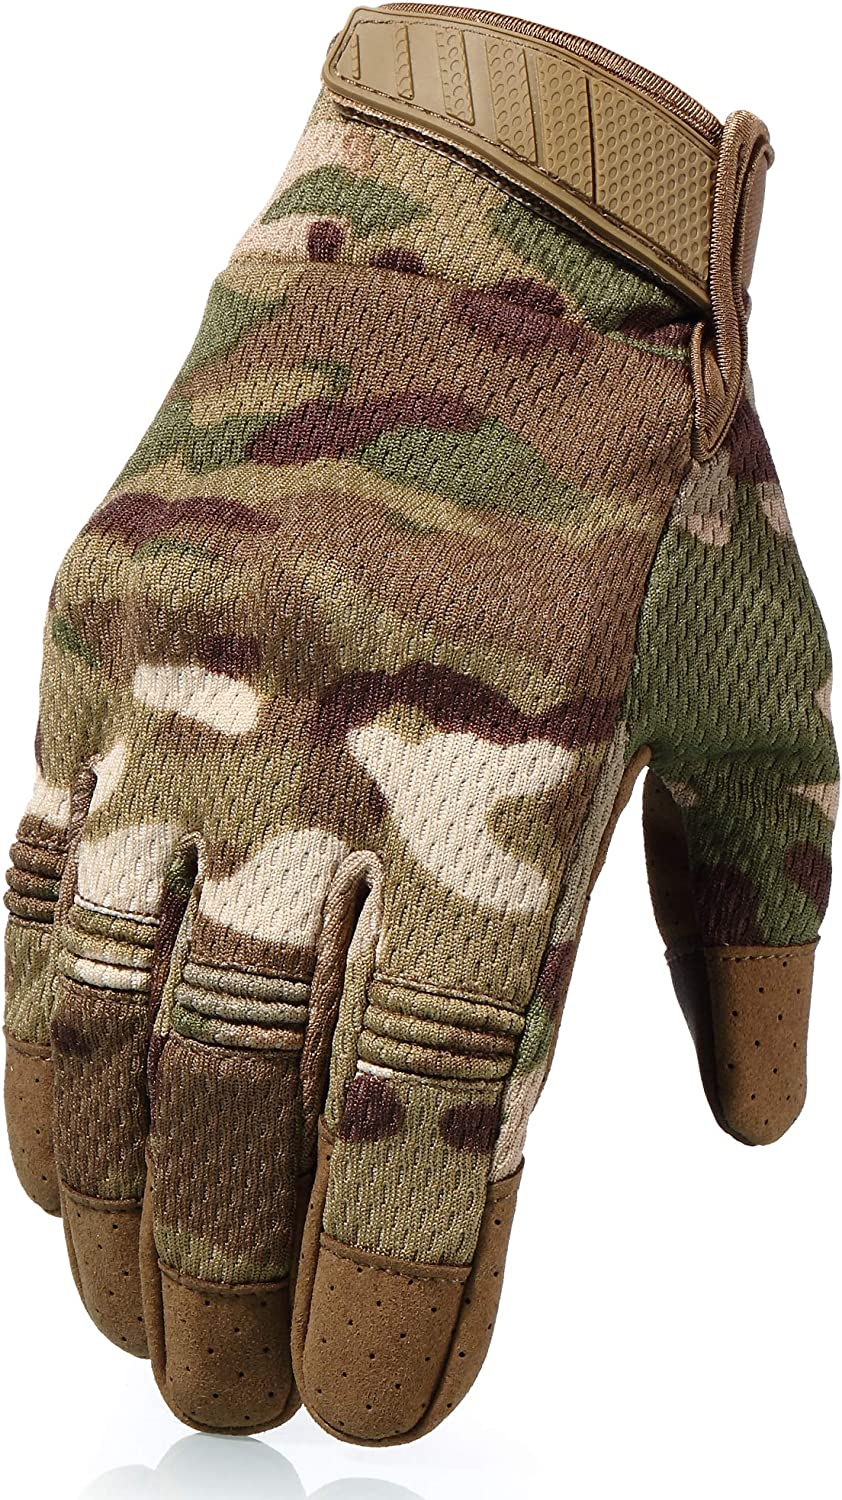 AXBXCX Breathable Flexible Touch Screen Full Finger Gloves